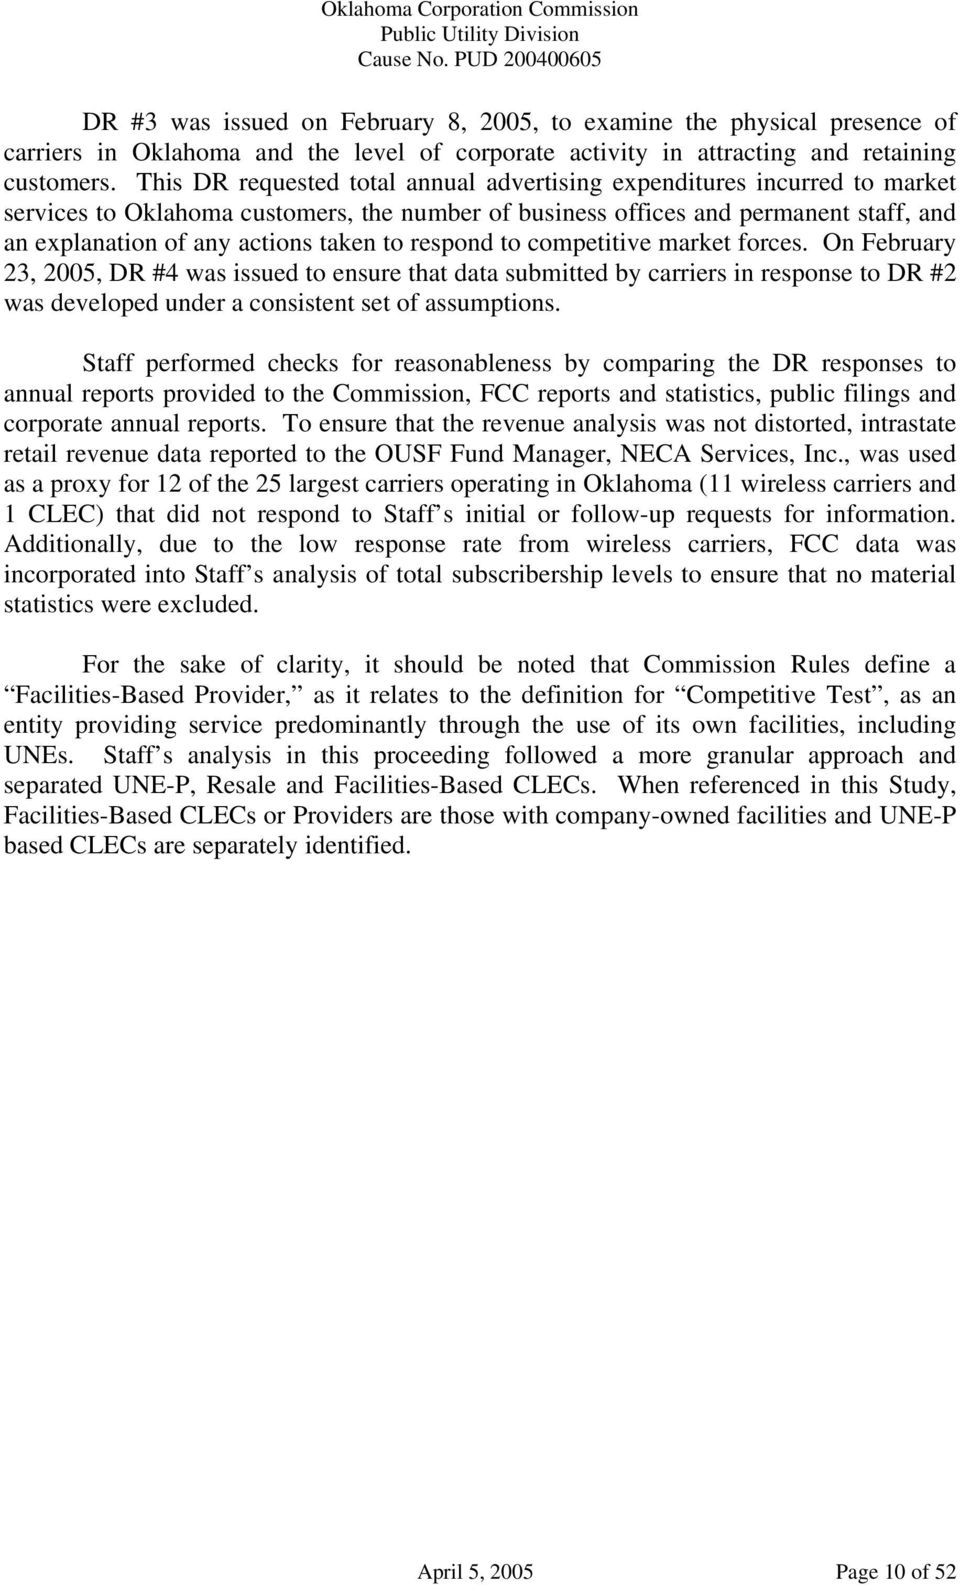 This DR requested total annual advertising expenditures incurred to market services to Oklahoma customers, the number of business offices and permanent staff, and an explanation of any actions taken